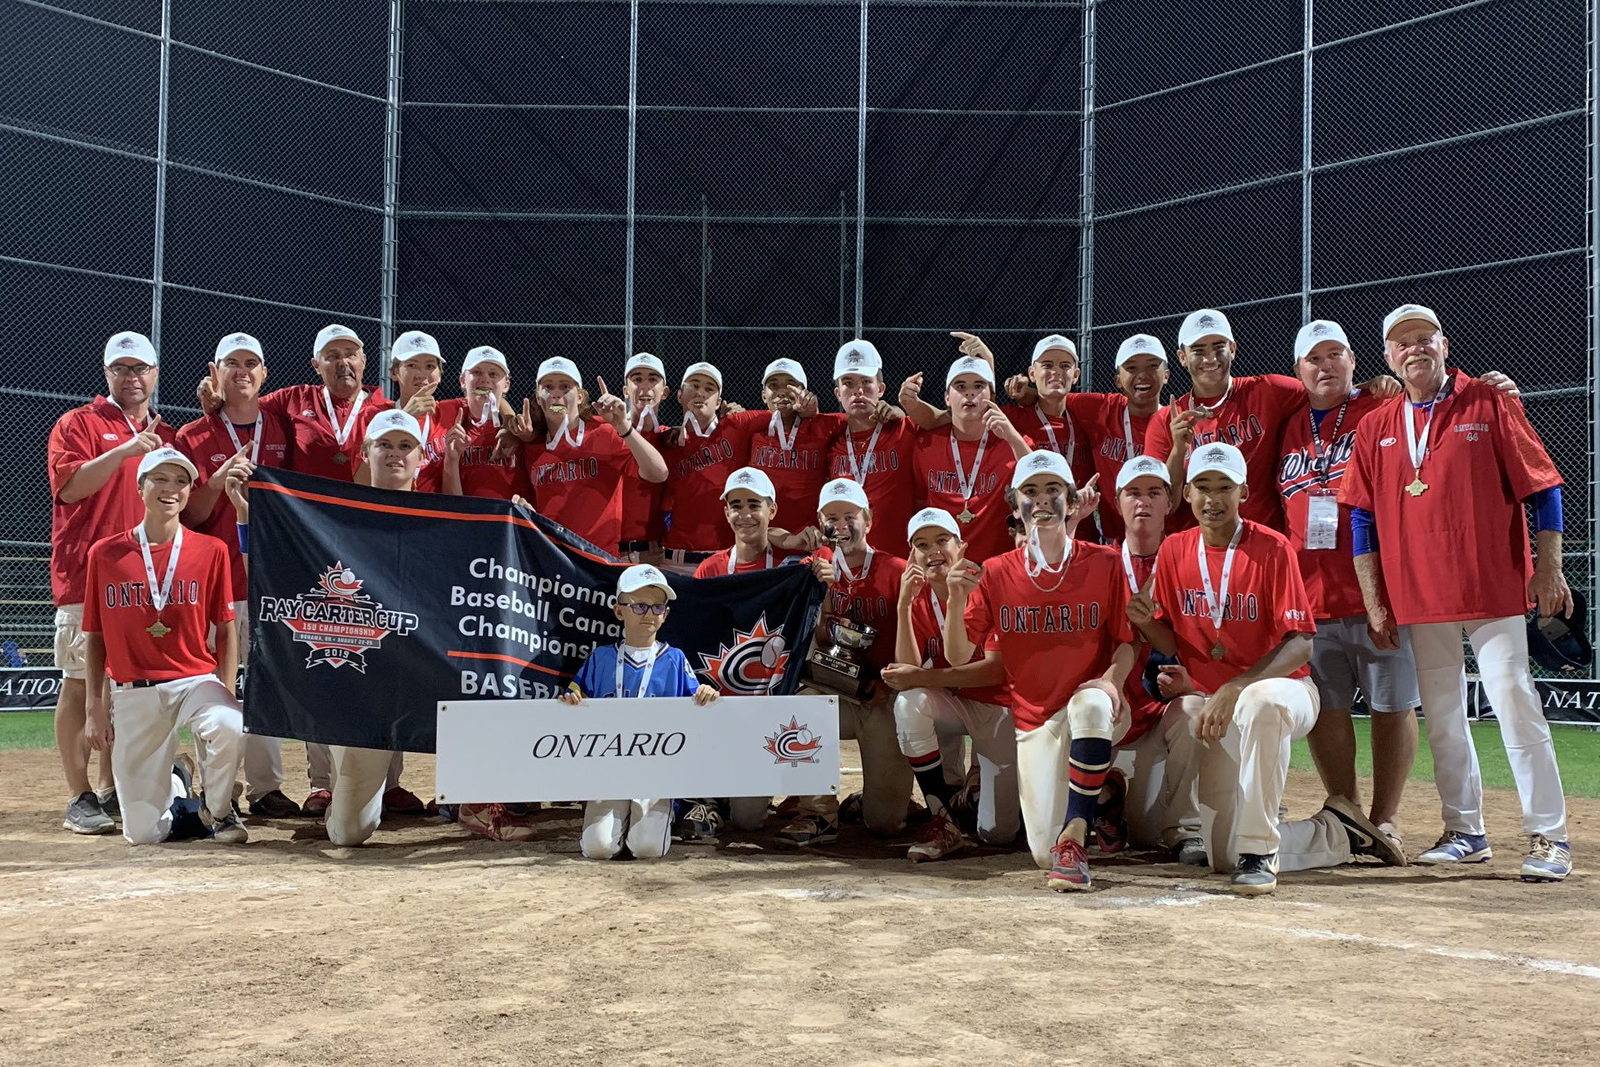 National Championships: Ontario, British Columbia, and Chatham Win Gold